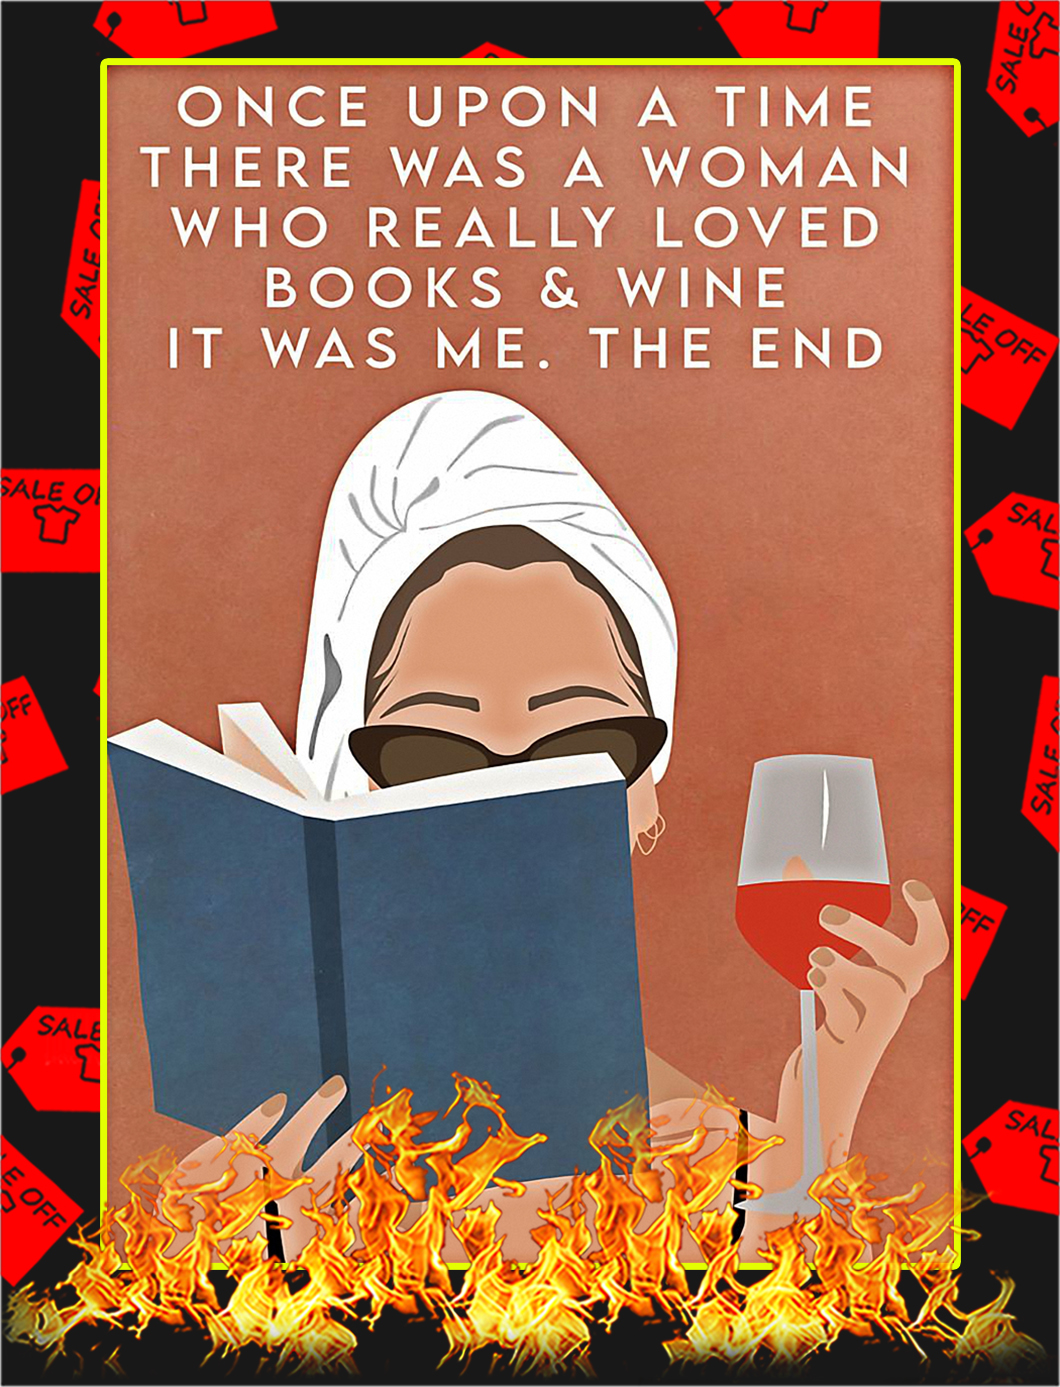 Once upon a time there was a woman loved books and wine poster -A1